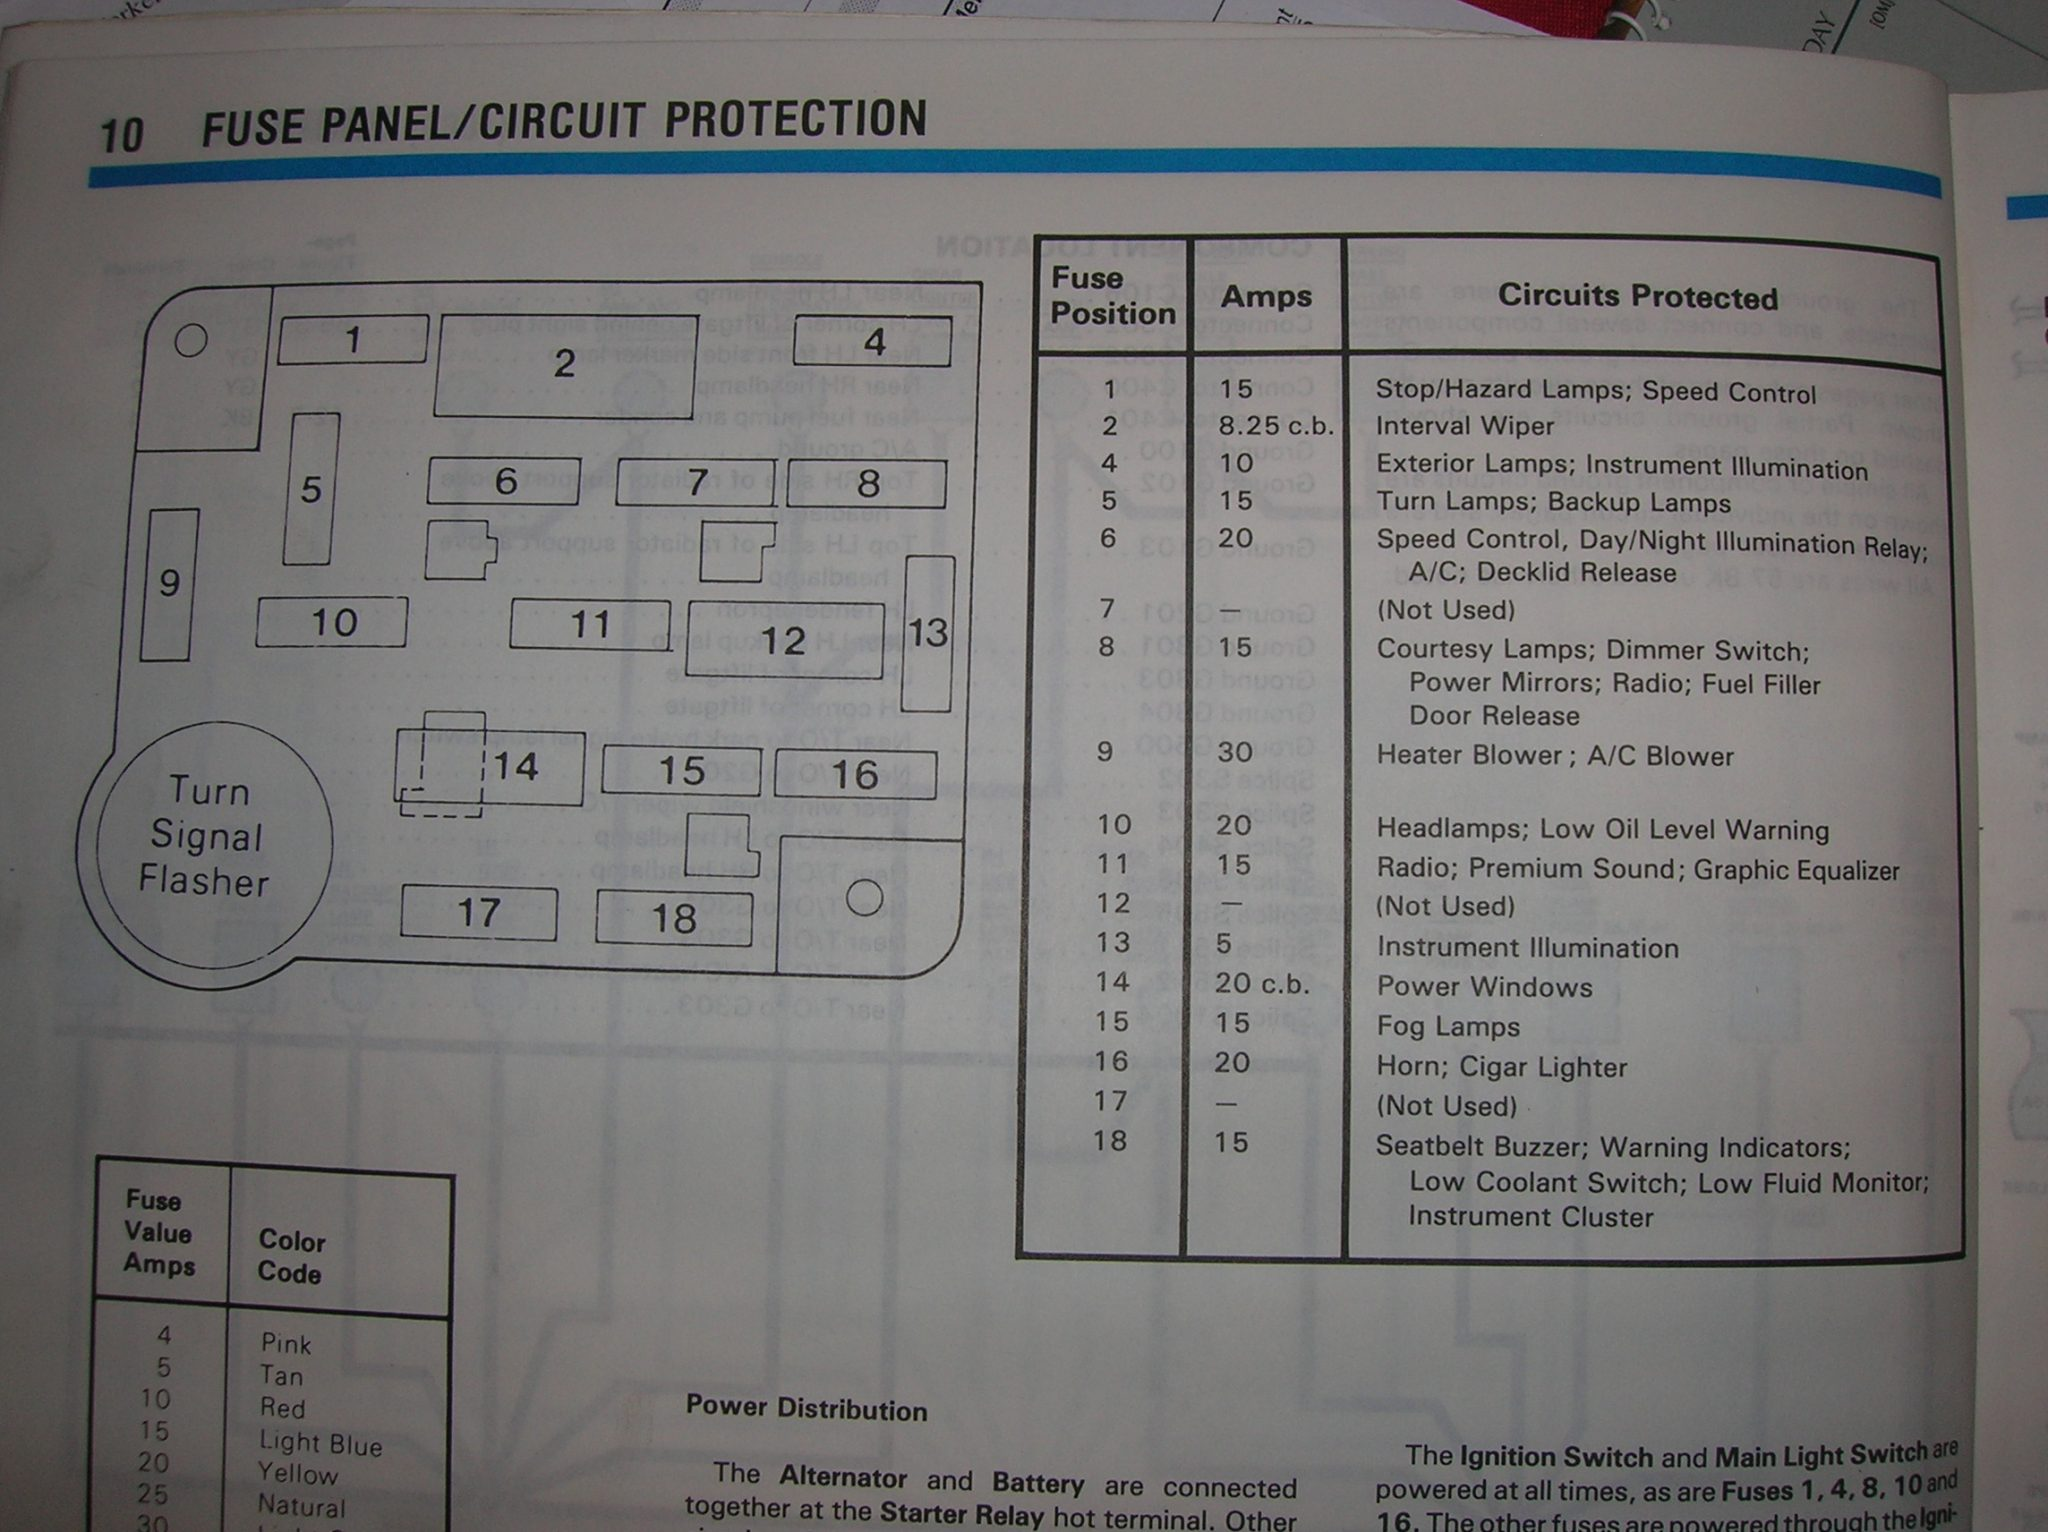 95 Ford Taurus Fuse Panel Diagram Wiring Library 04 Box